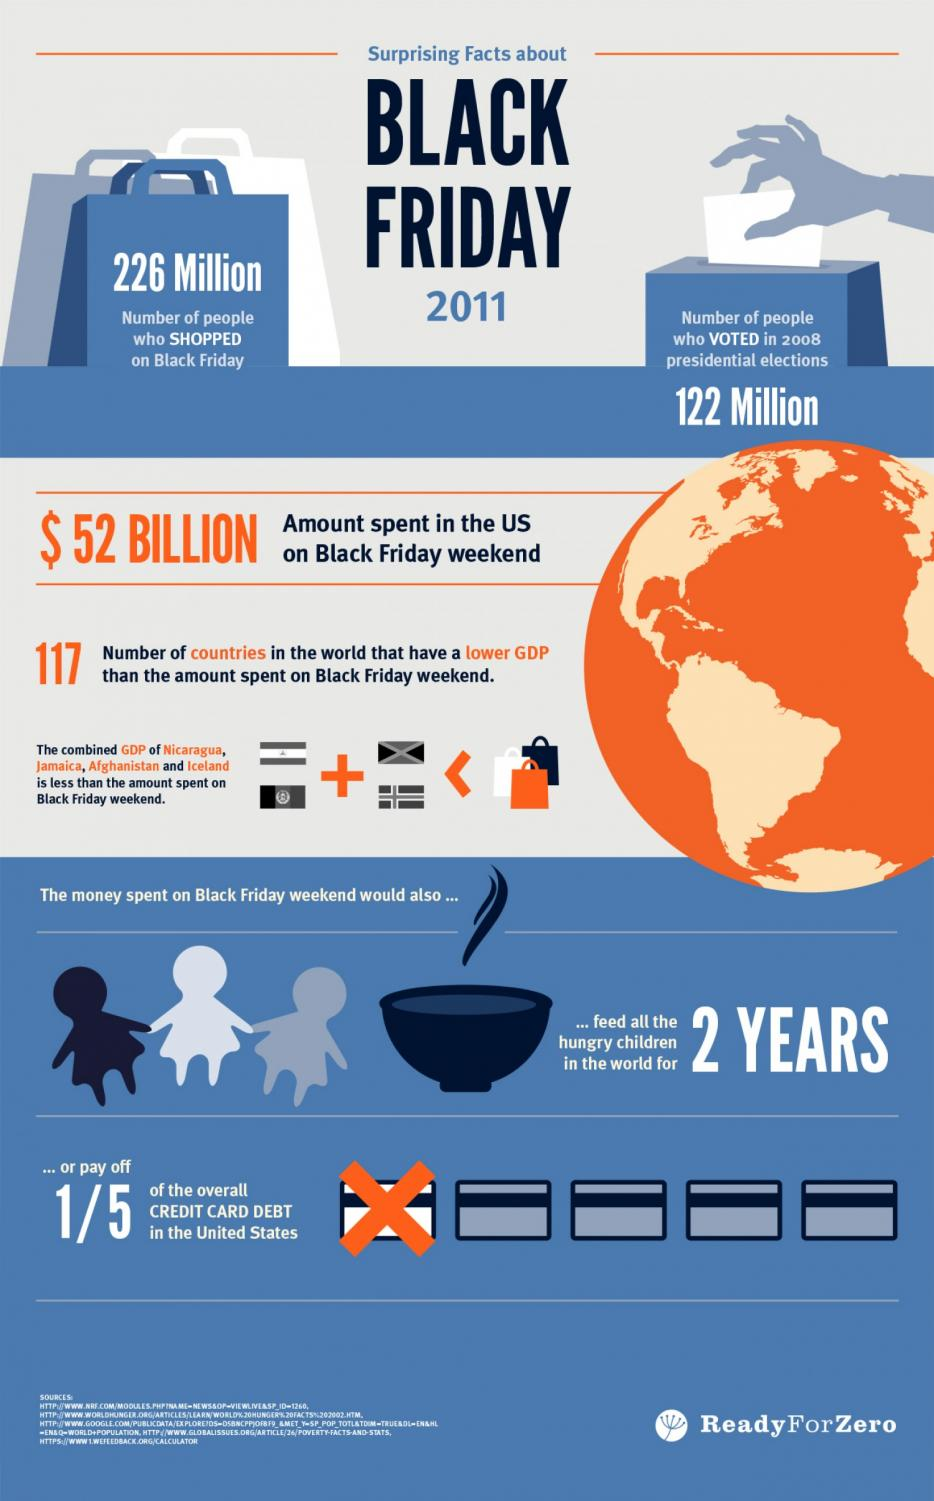 The infographic shows surprising facts about Black Friday that demonstrate the insane amount of money spent during this day. Money spent on items such as flat-screen TVs and room decor could instead be used to feed all the hungry children in the world for 2 years. The sum of the money is so high that it's larger than the GDP of 117 countries in the world. Money that could be used to clear up debt creates an even bigger problem of holiday debt.